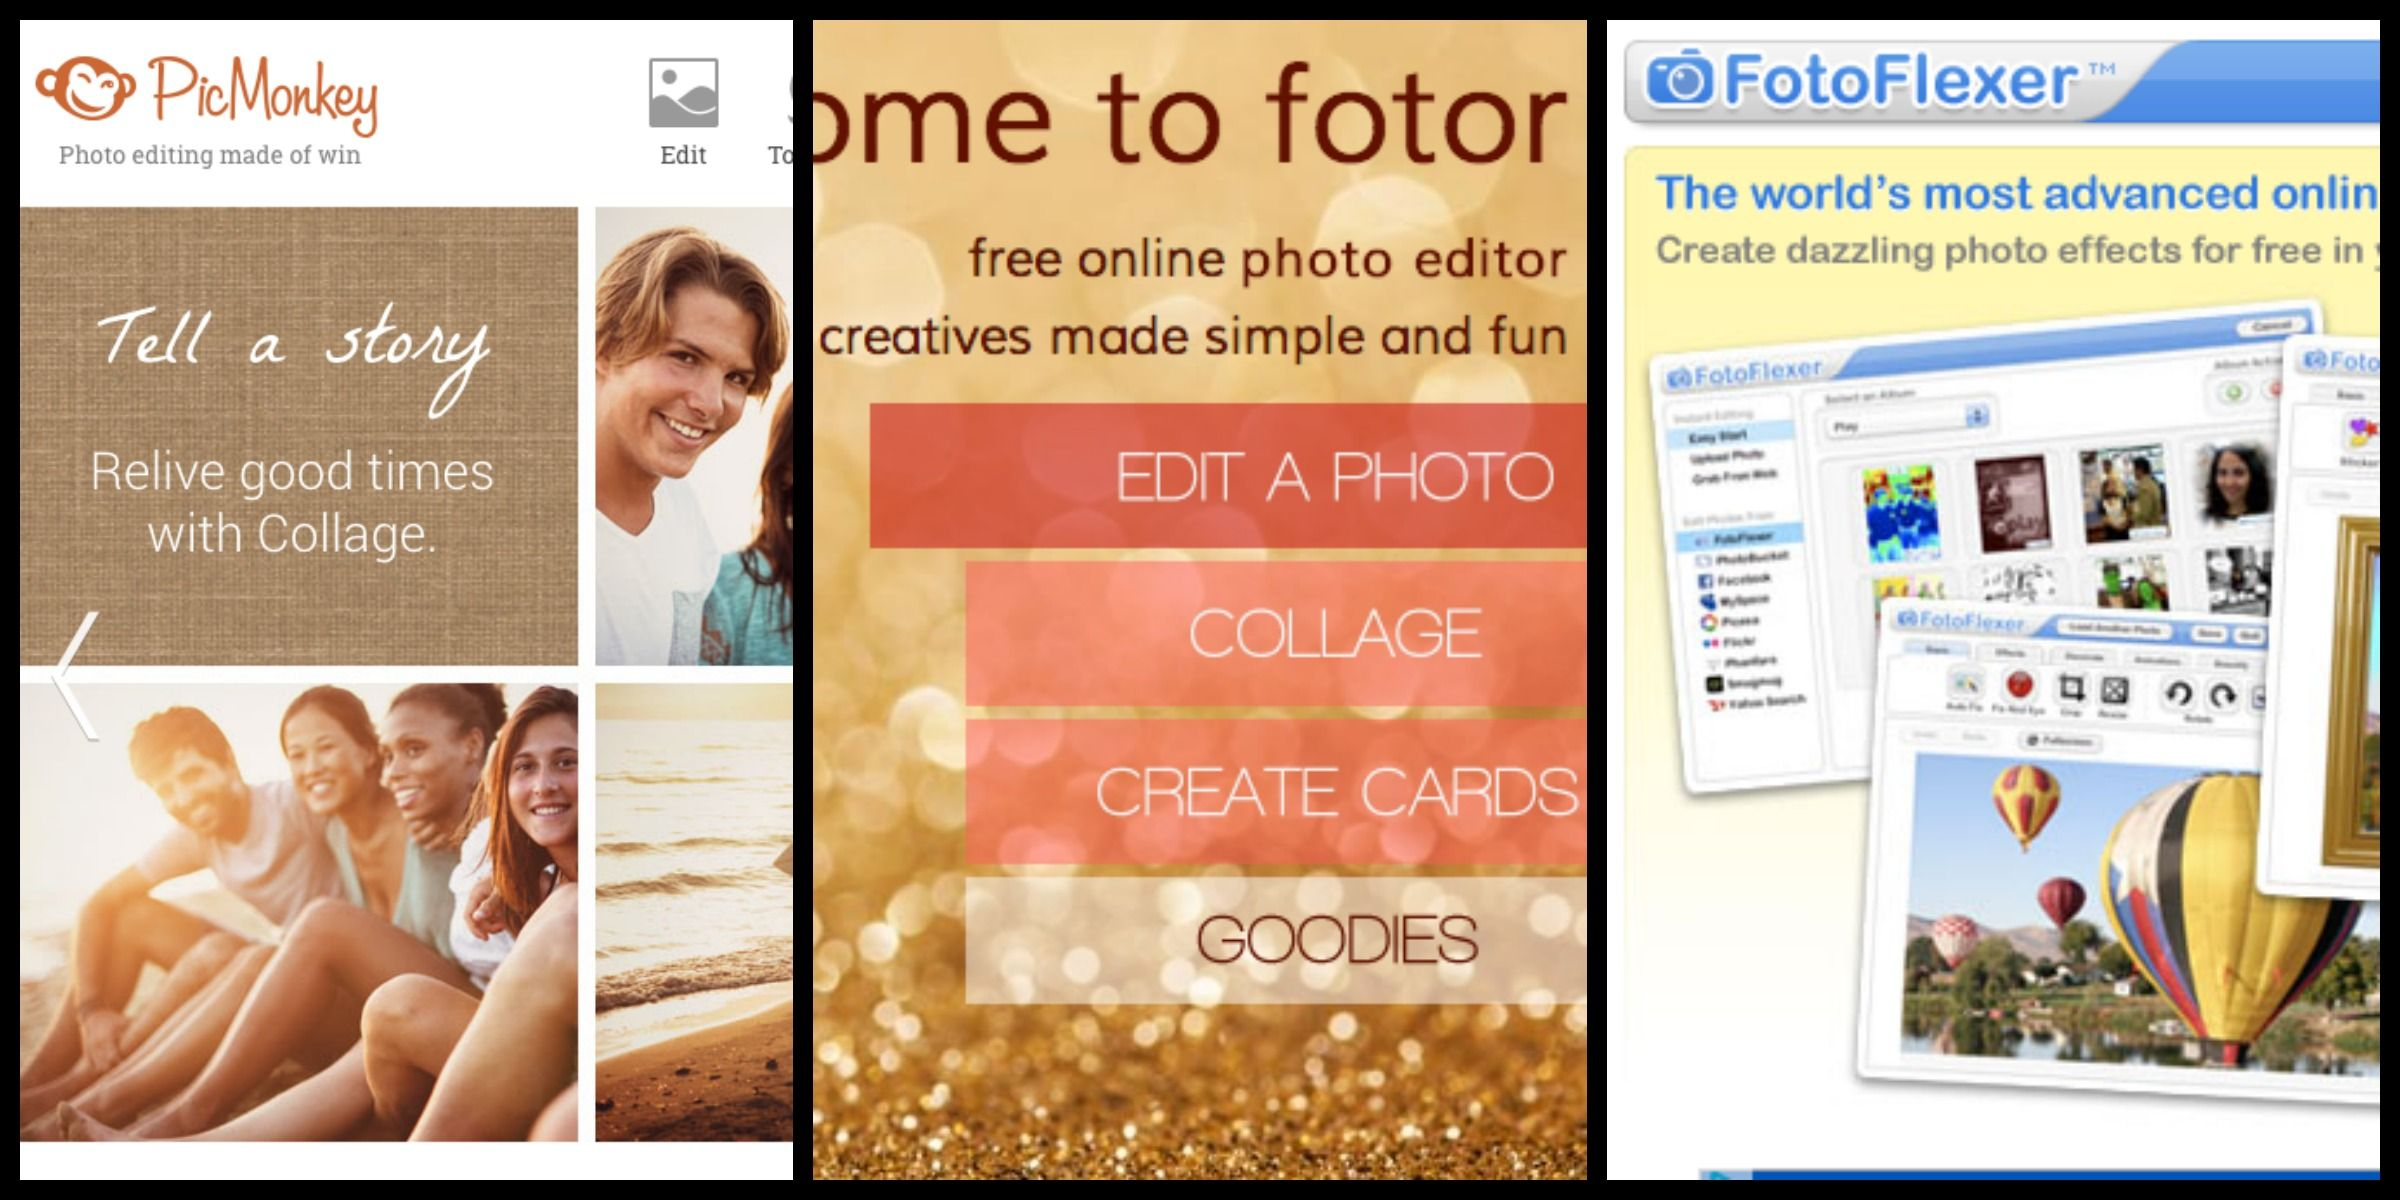 Blogs, blogging, bloggers: FINDING FREE PHOTOGRAPHY FOR UNBEATABLE VISUAL CONTENT